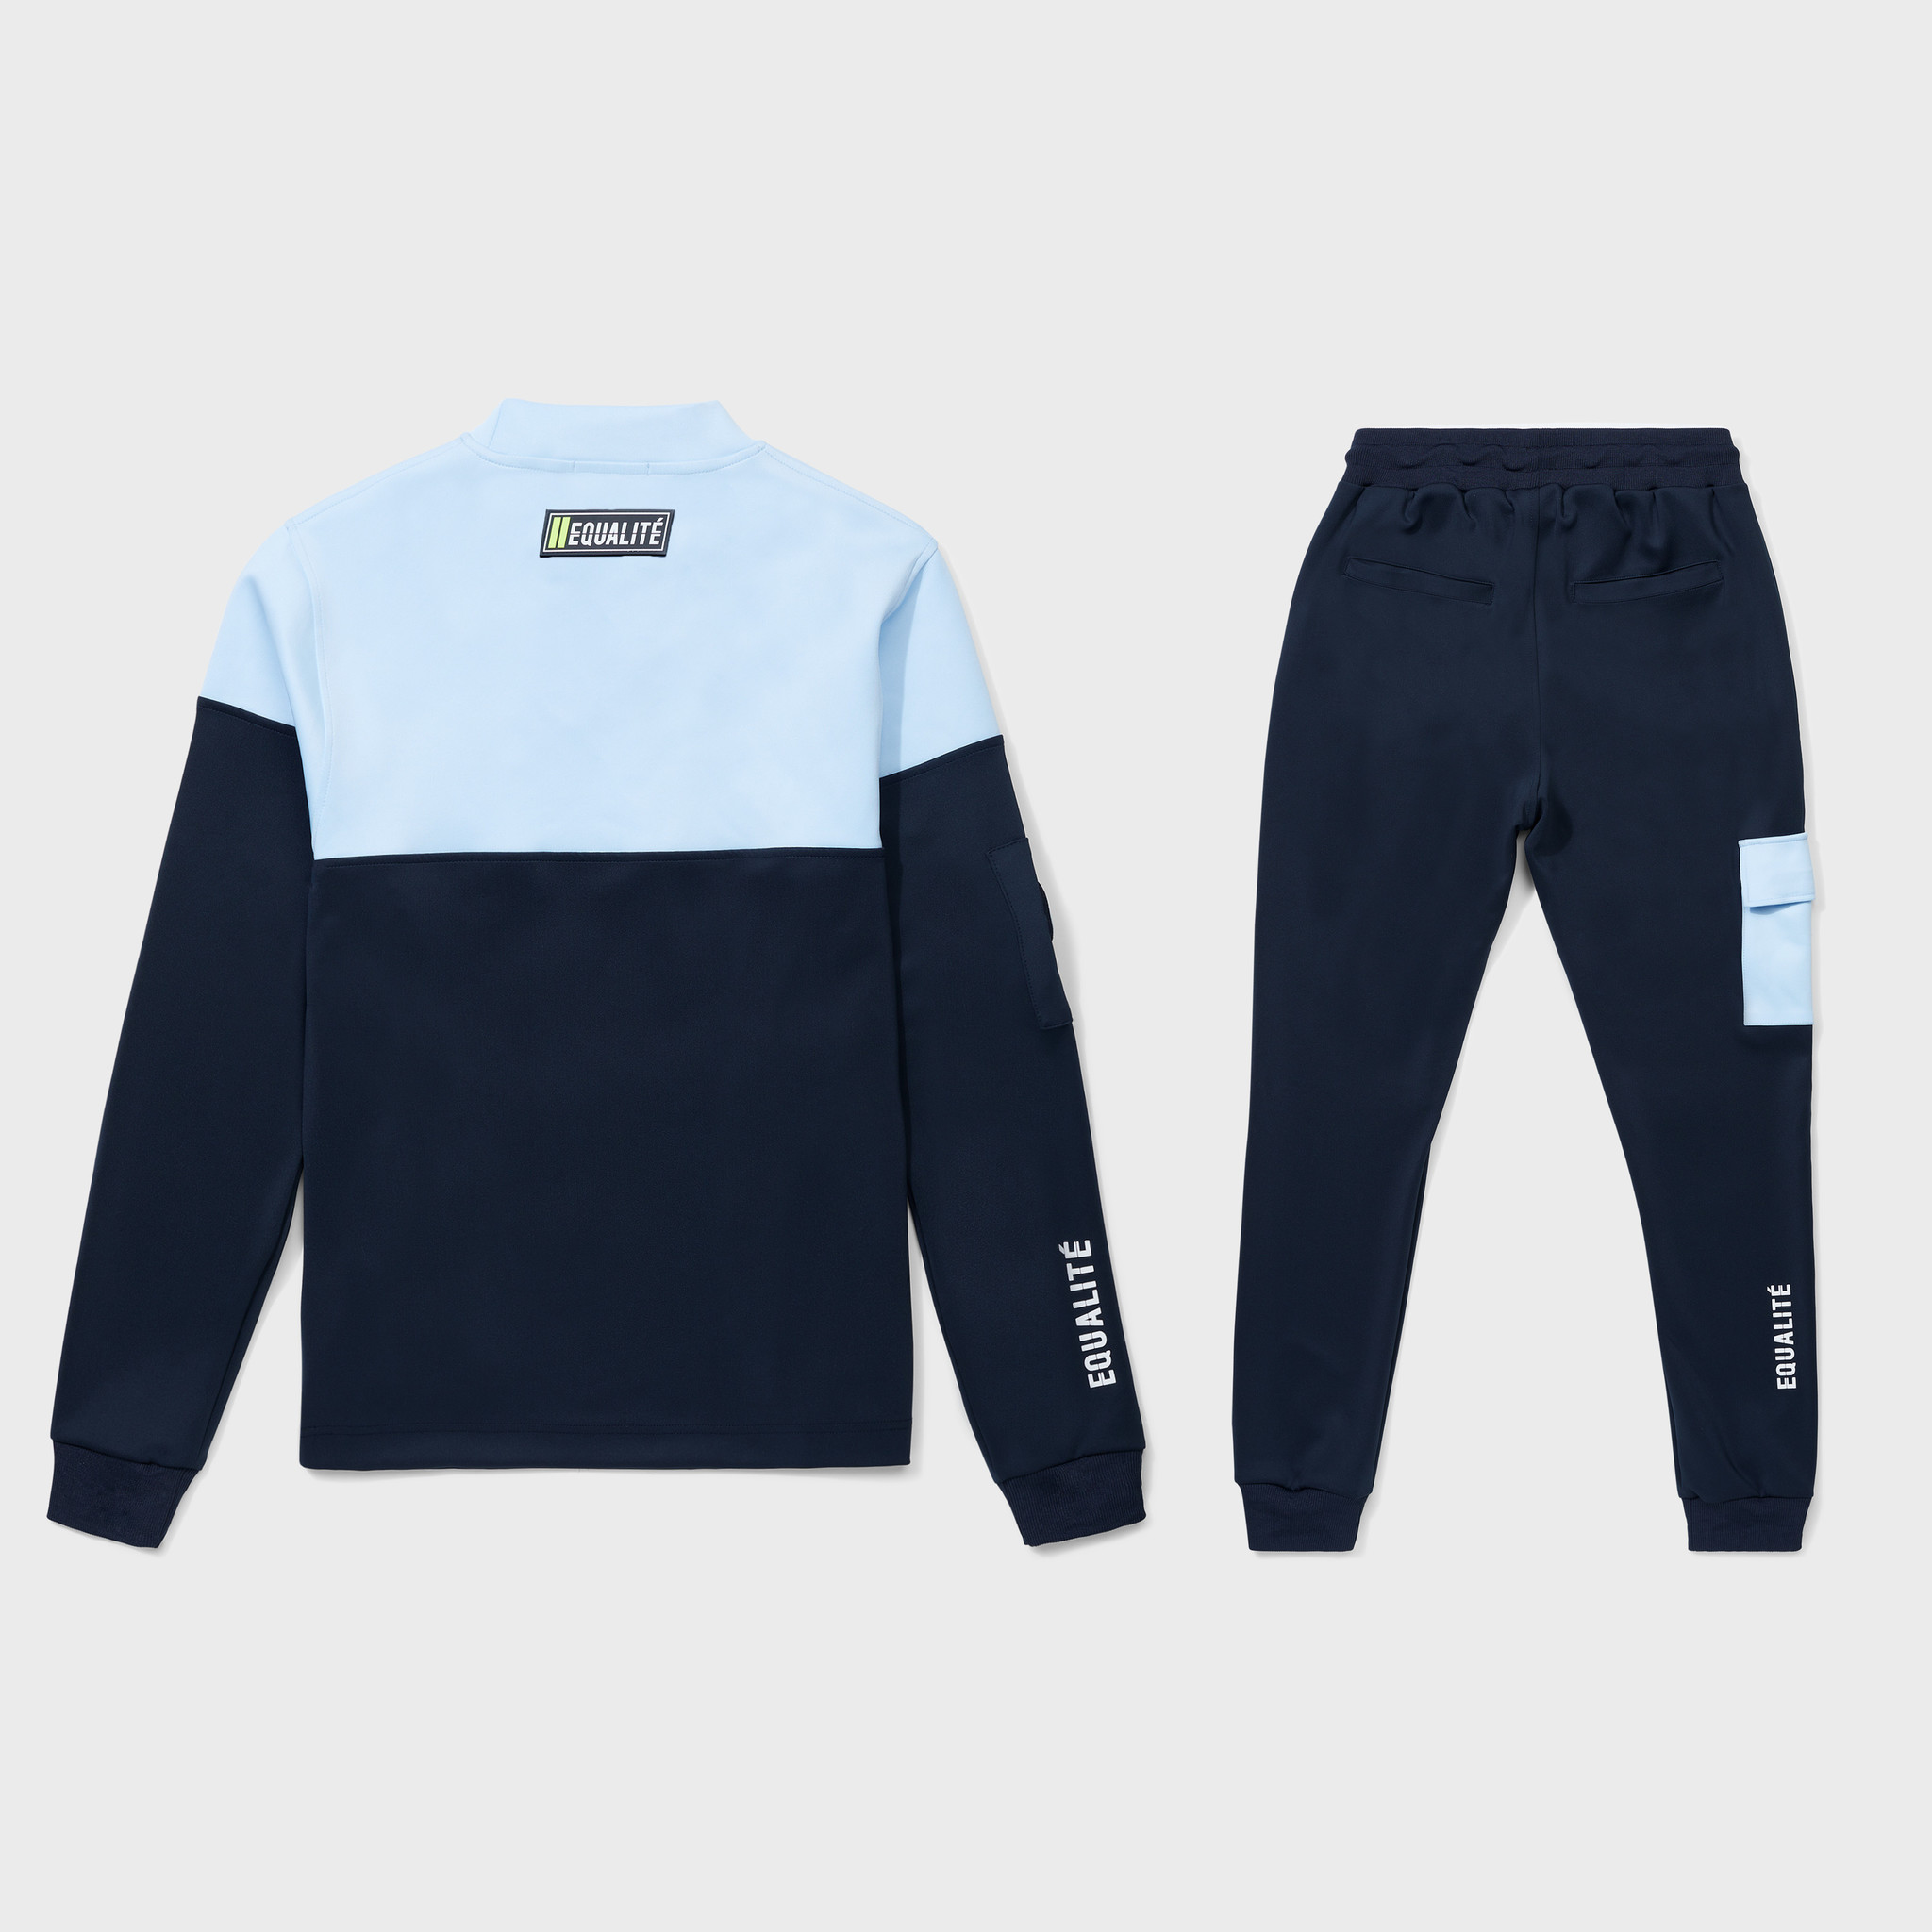 FUTURE POLYESTER TRACKSUIT NAVY & LIGHT BLUE-2